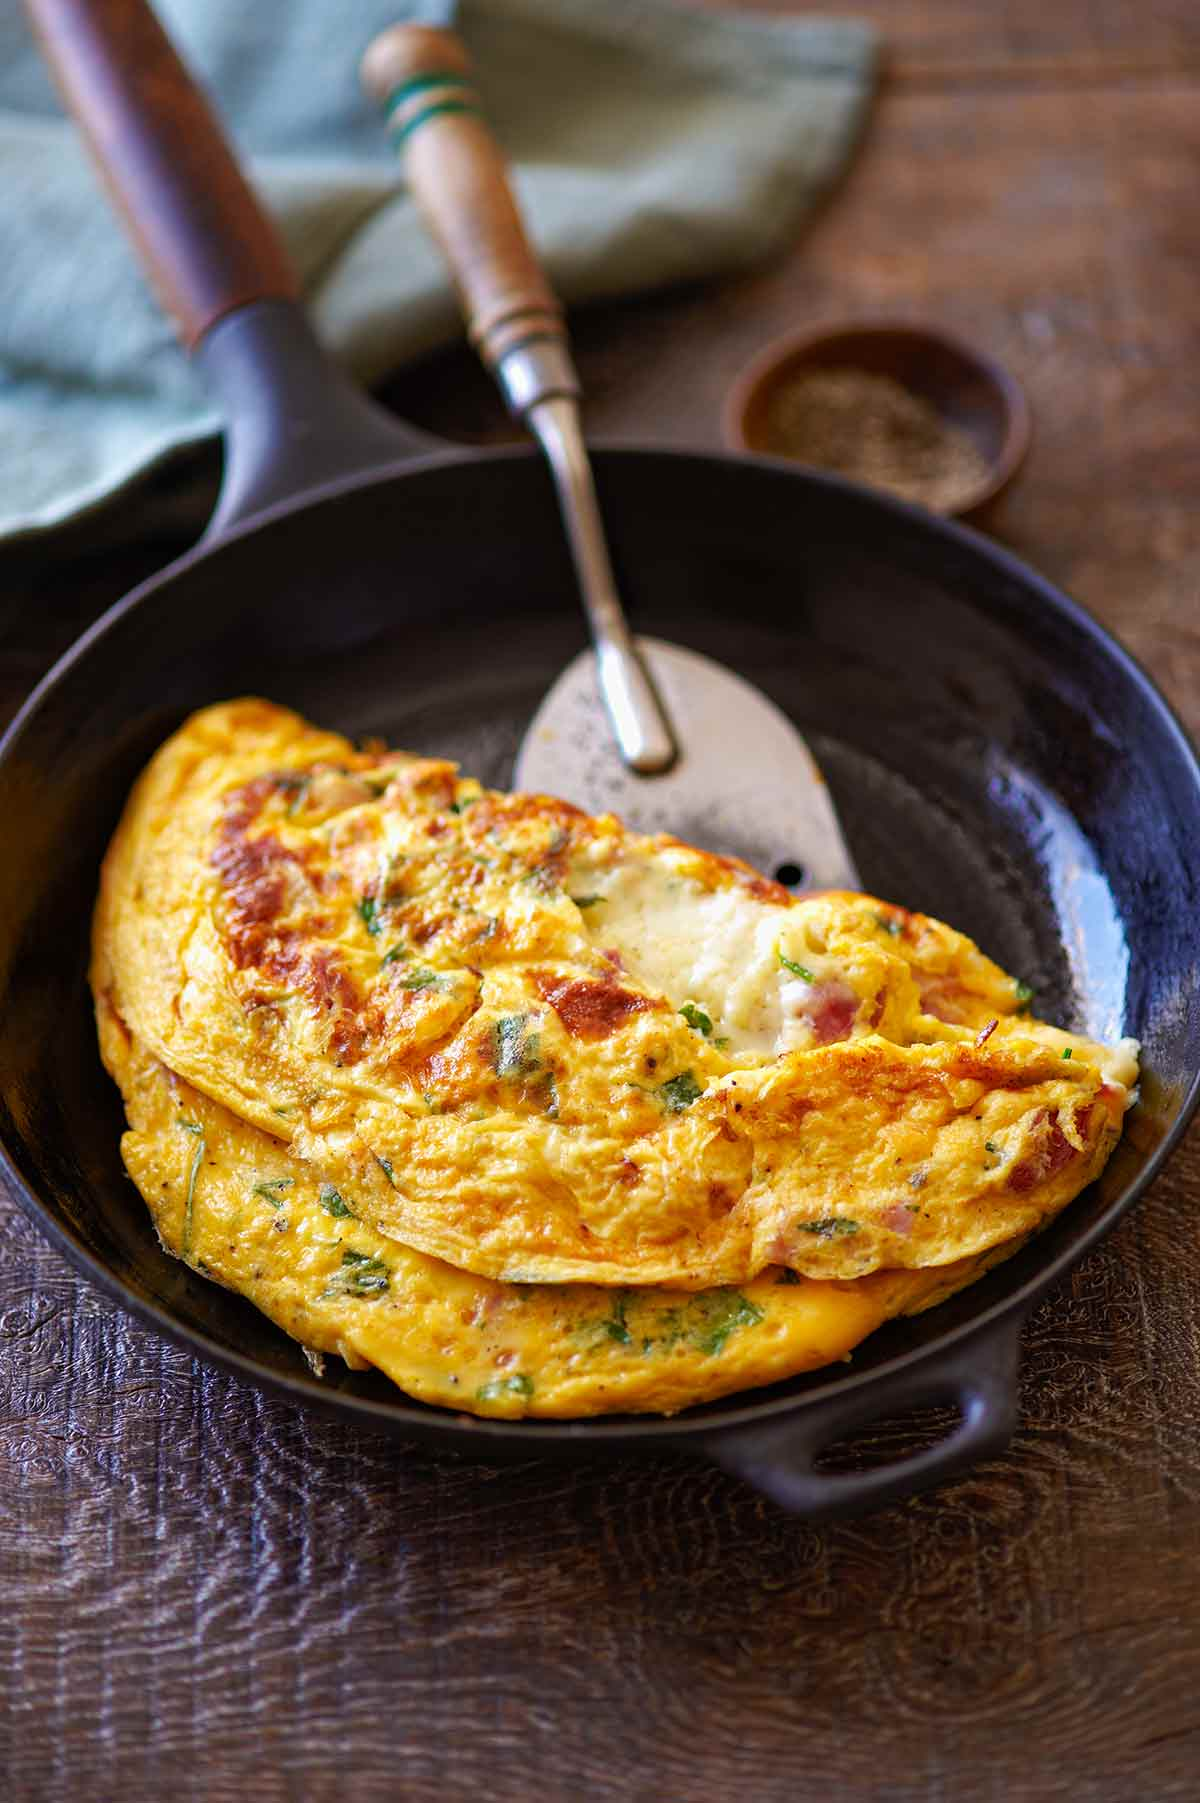 A cooked ham and cheese omelet in a small skillet with a spatula sliding underneath to flip it.